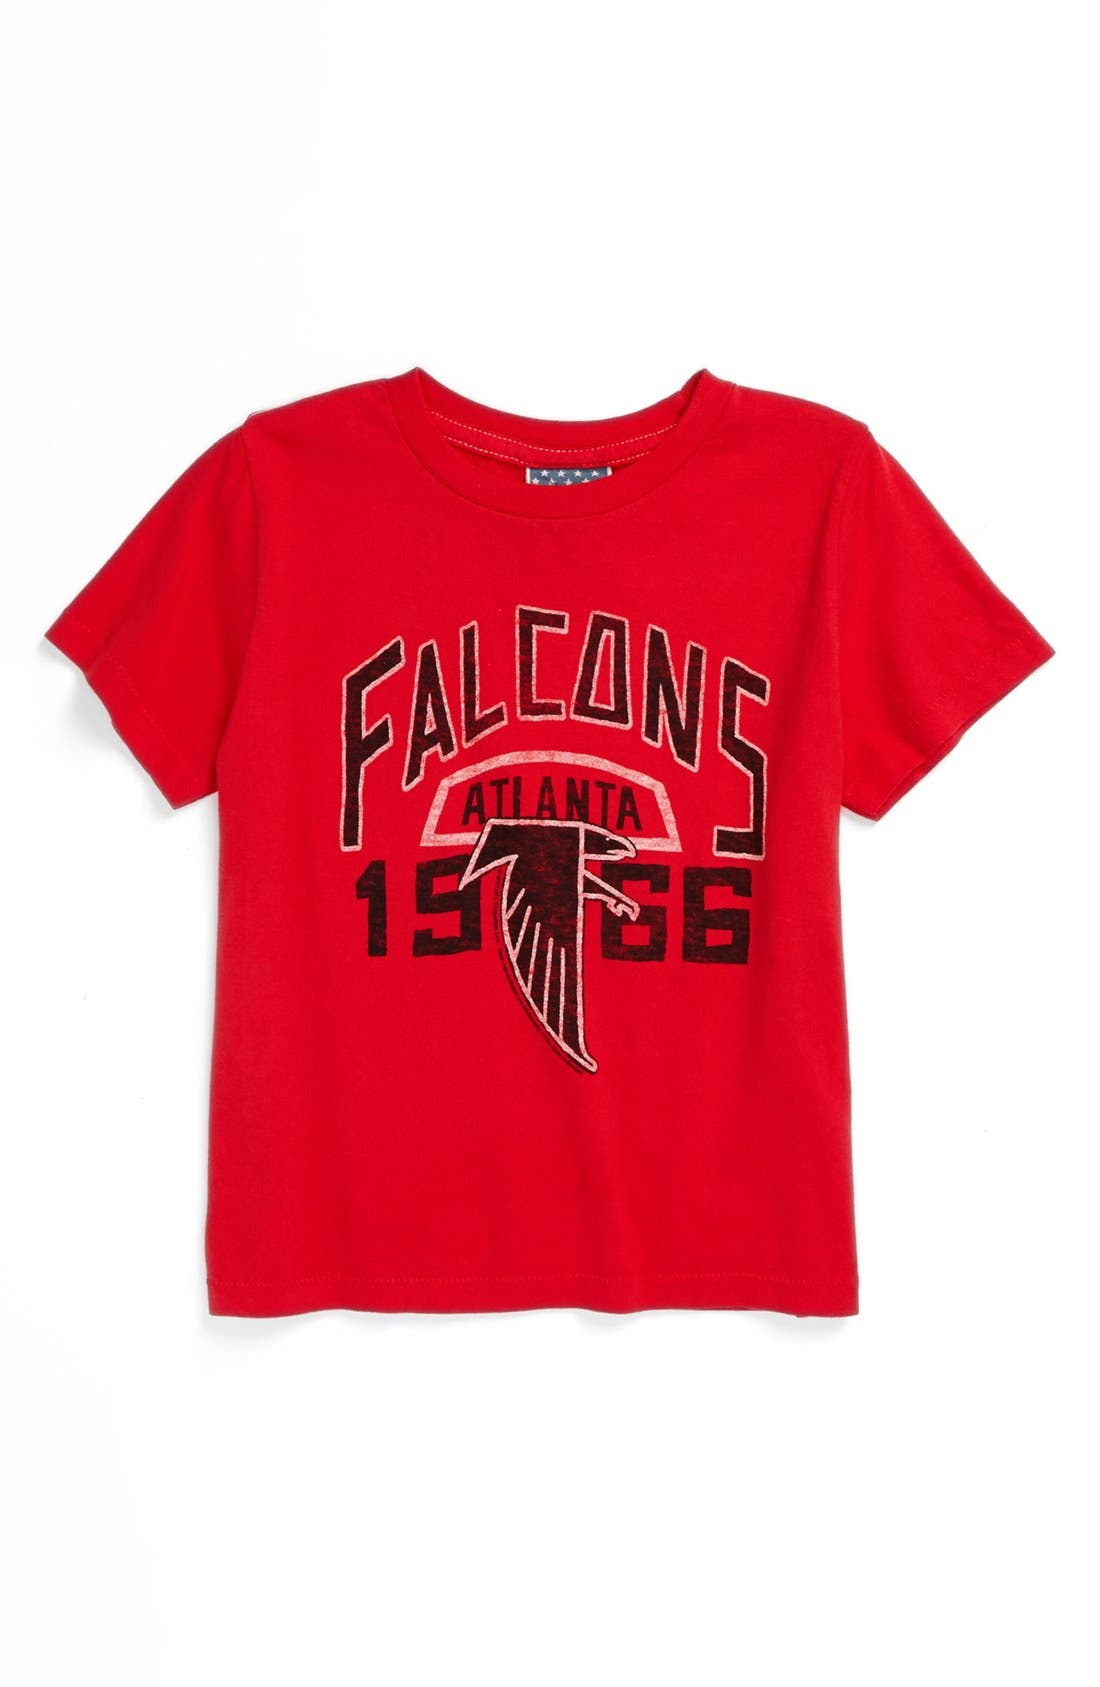 Main Image - Junk Food 'Atlanta Falcons' T-Shirt (Toddler Boys)